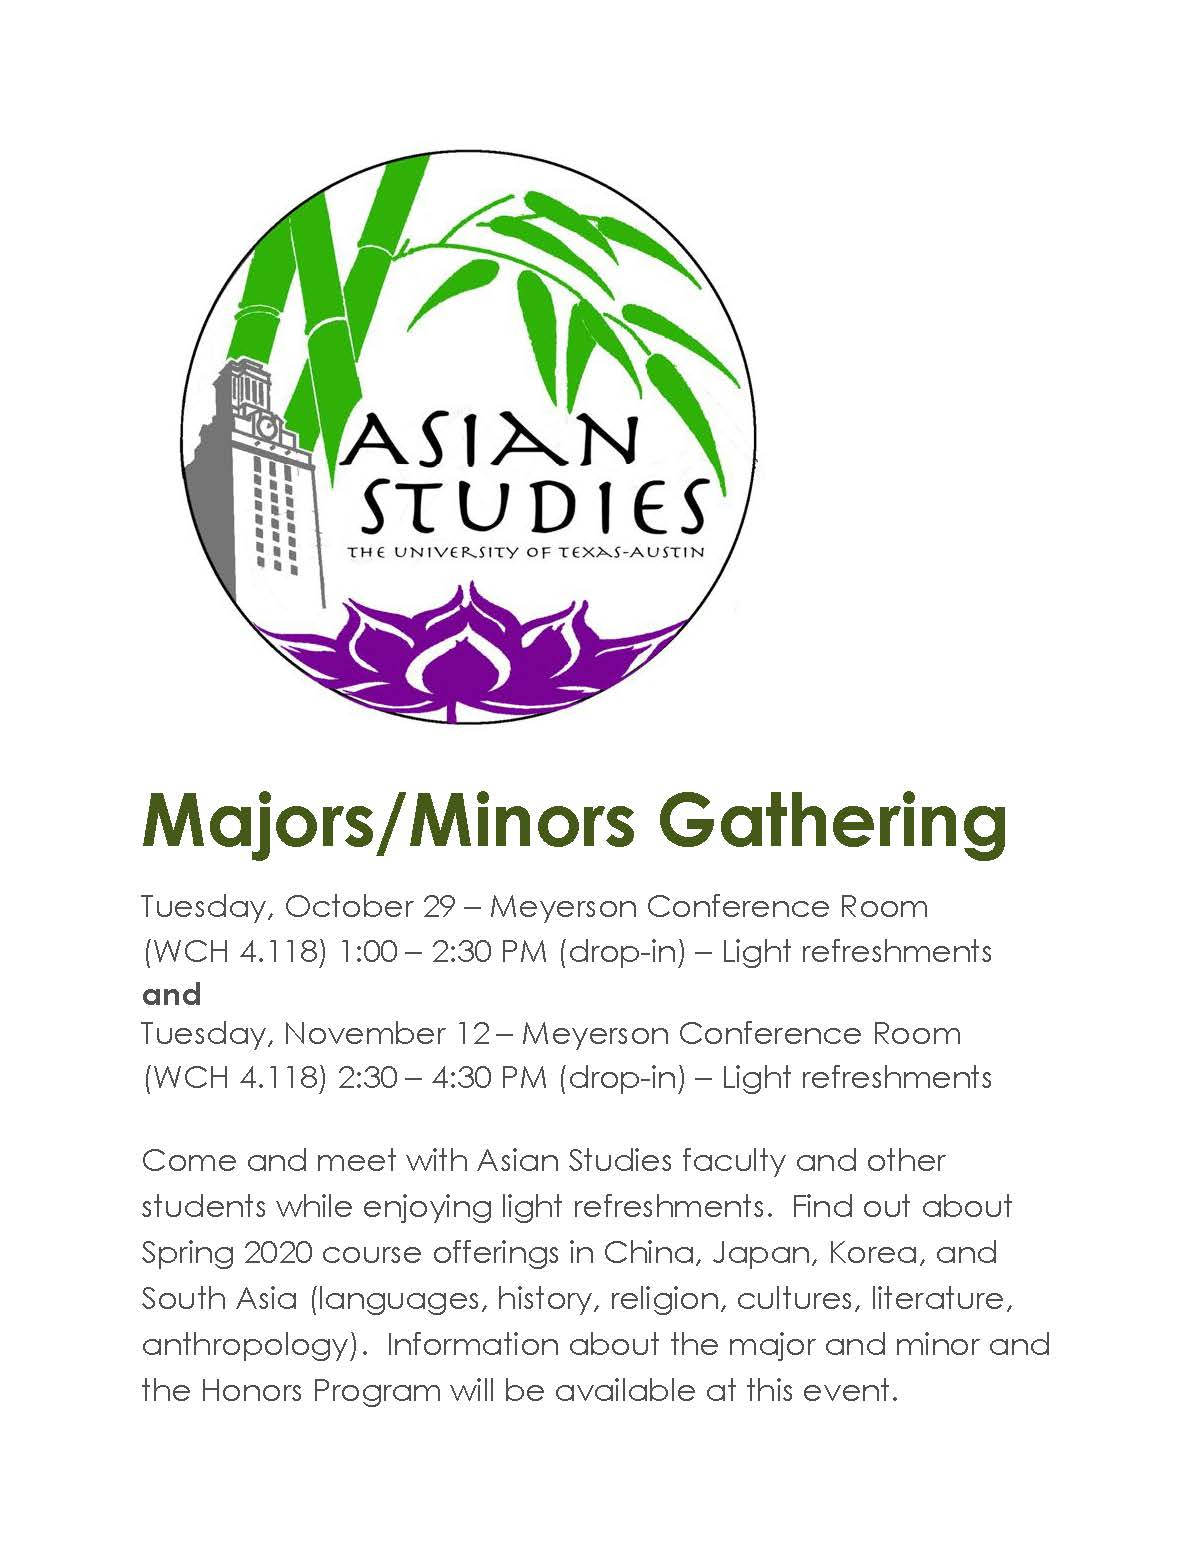 Majors/Minors Gathering (drop-in)